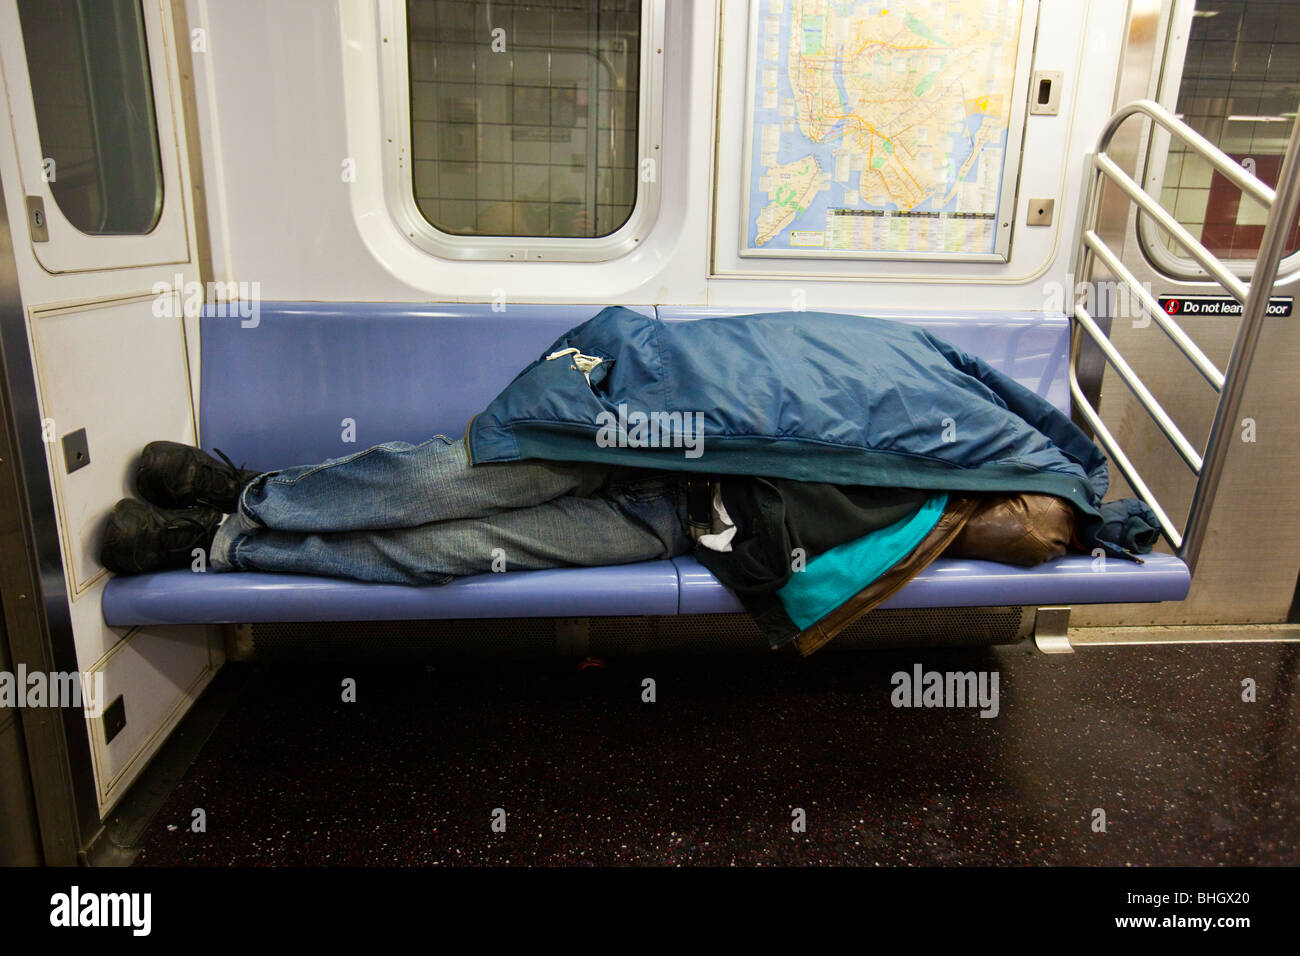 homeless man sleeping on the subway in new york city stock photo 28031192 alamy. Black Bedroom Furniture Sets. Home Design Ideas